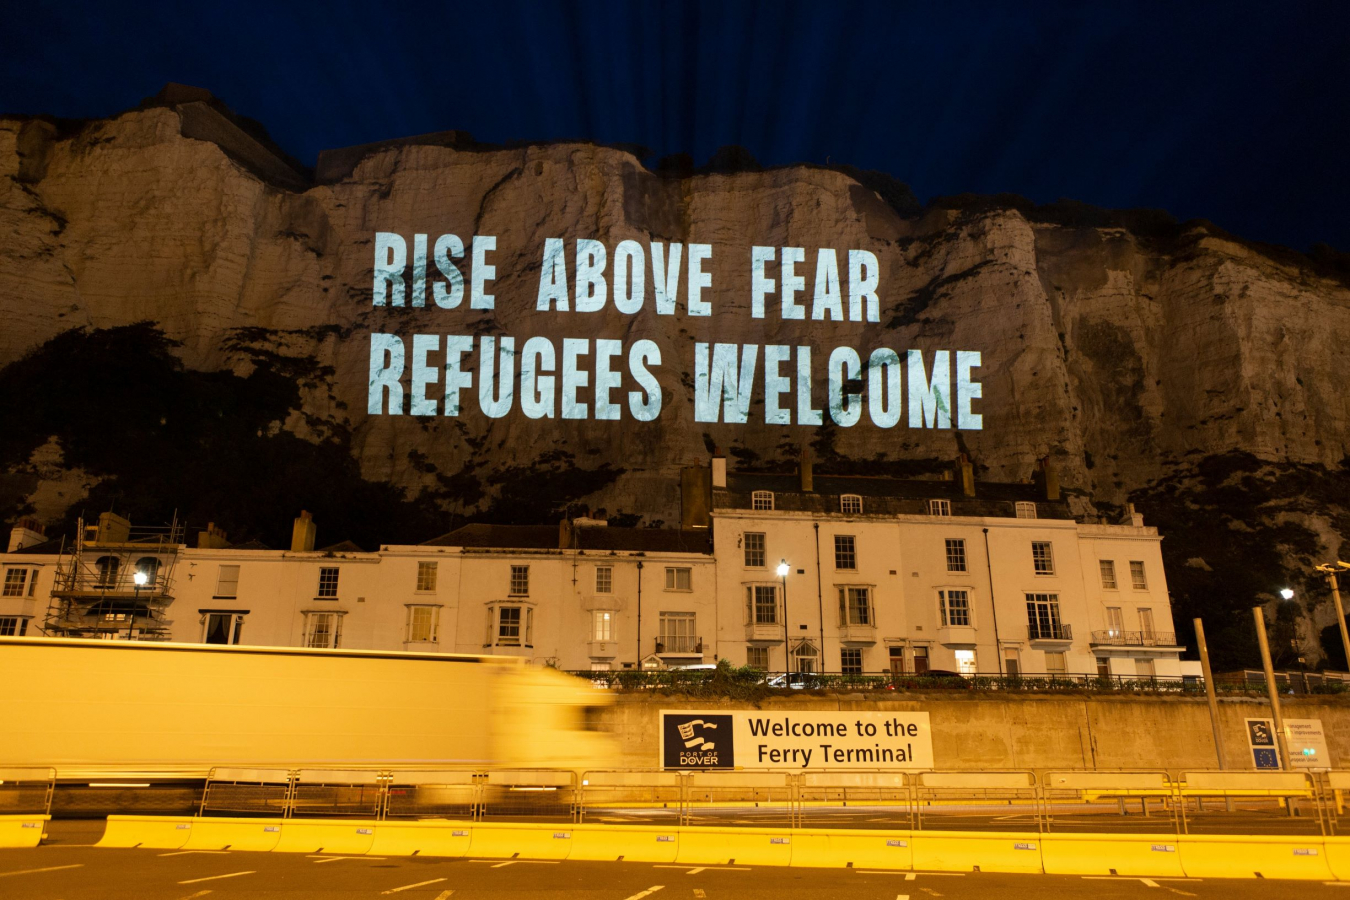 "Freedom from Torture ""Rise above fear refugees welcome"", Dover, Kent 5 September 2020"